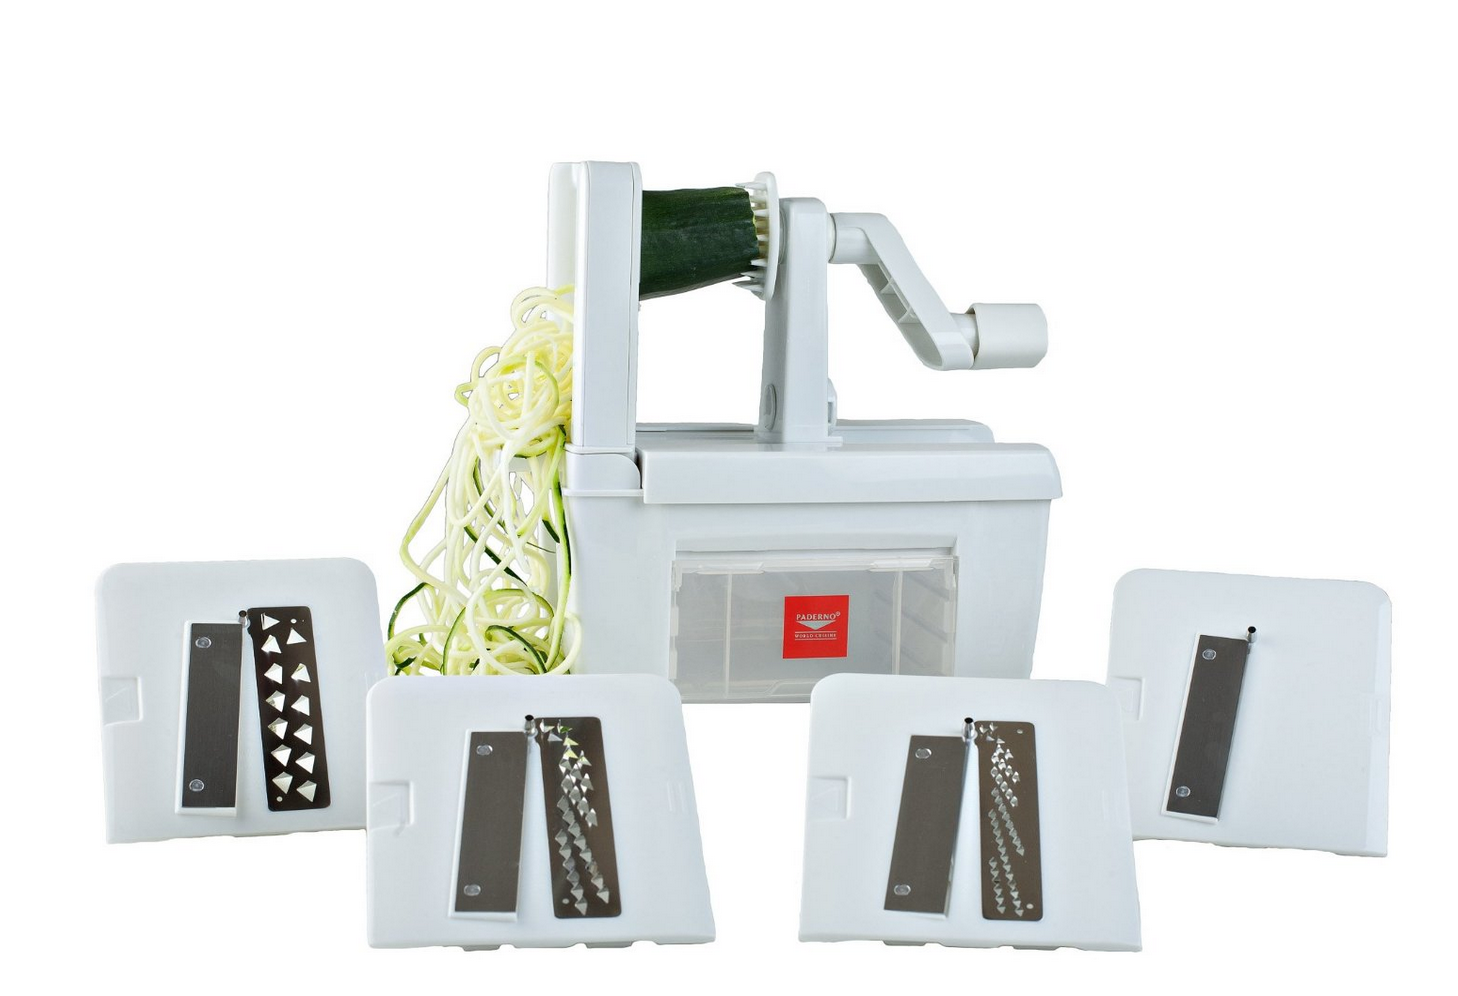 Highly Rated Paderno World Cuisine Spiralizer Pro with 4 Blades Only $34.95 (reg. $59.95!)